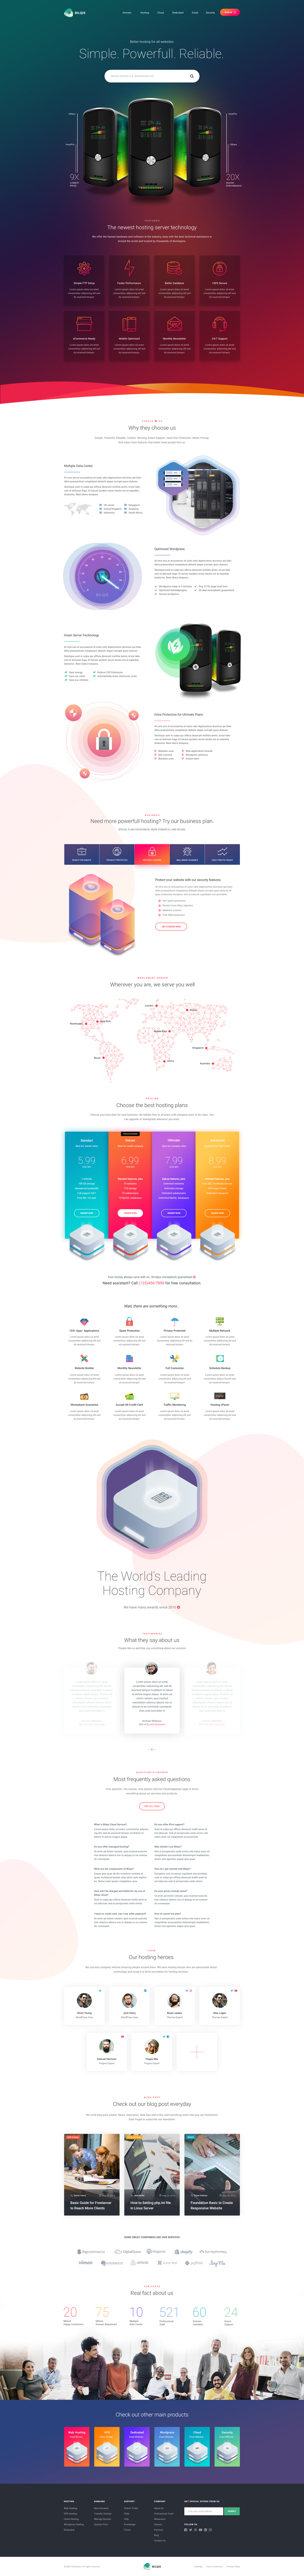 Bilqis - The Hosting PSD Template by BooStock   ThemeForest